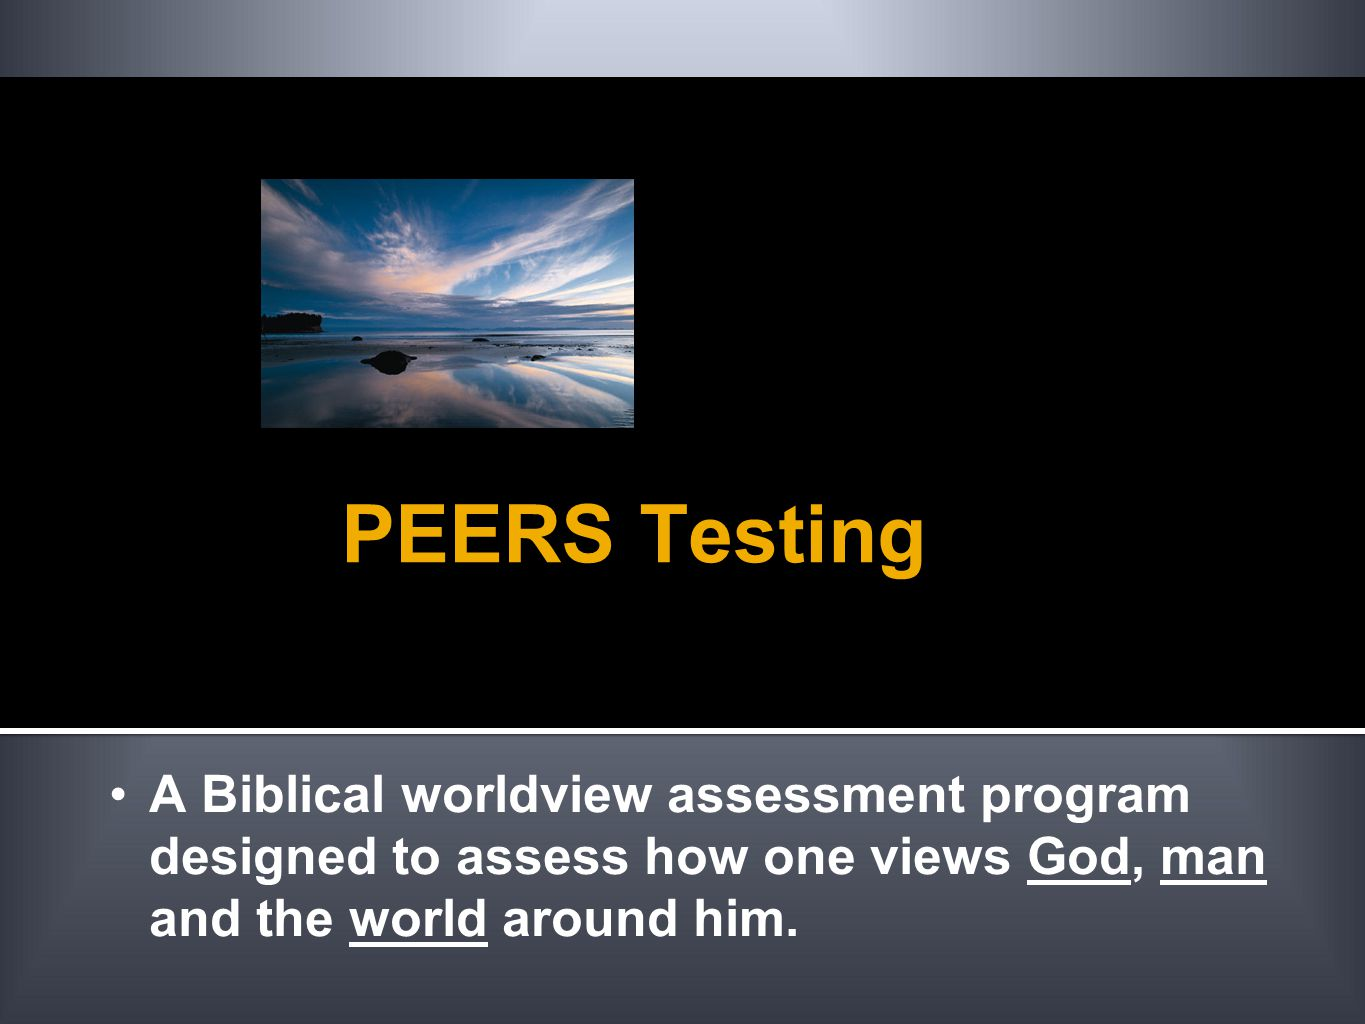 PEERS Testing A Biblical worldview assessment program designed to assess how one views God, man and the world around him.